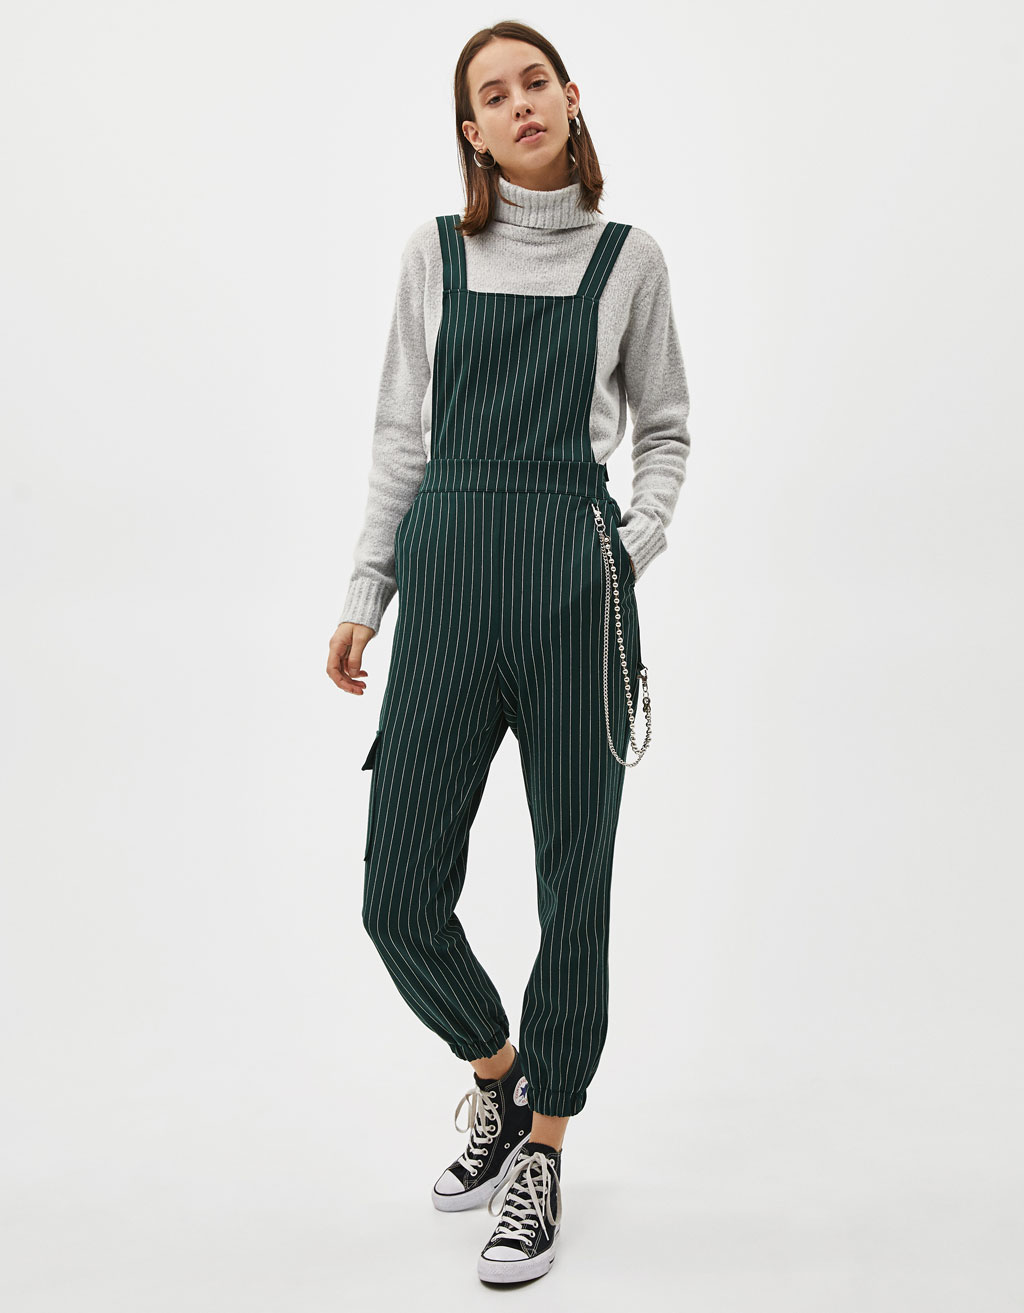 Utility jumpsuit with chain